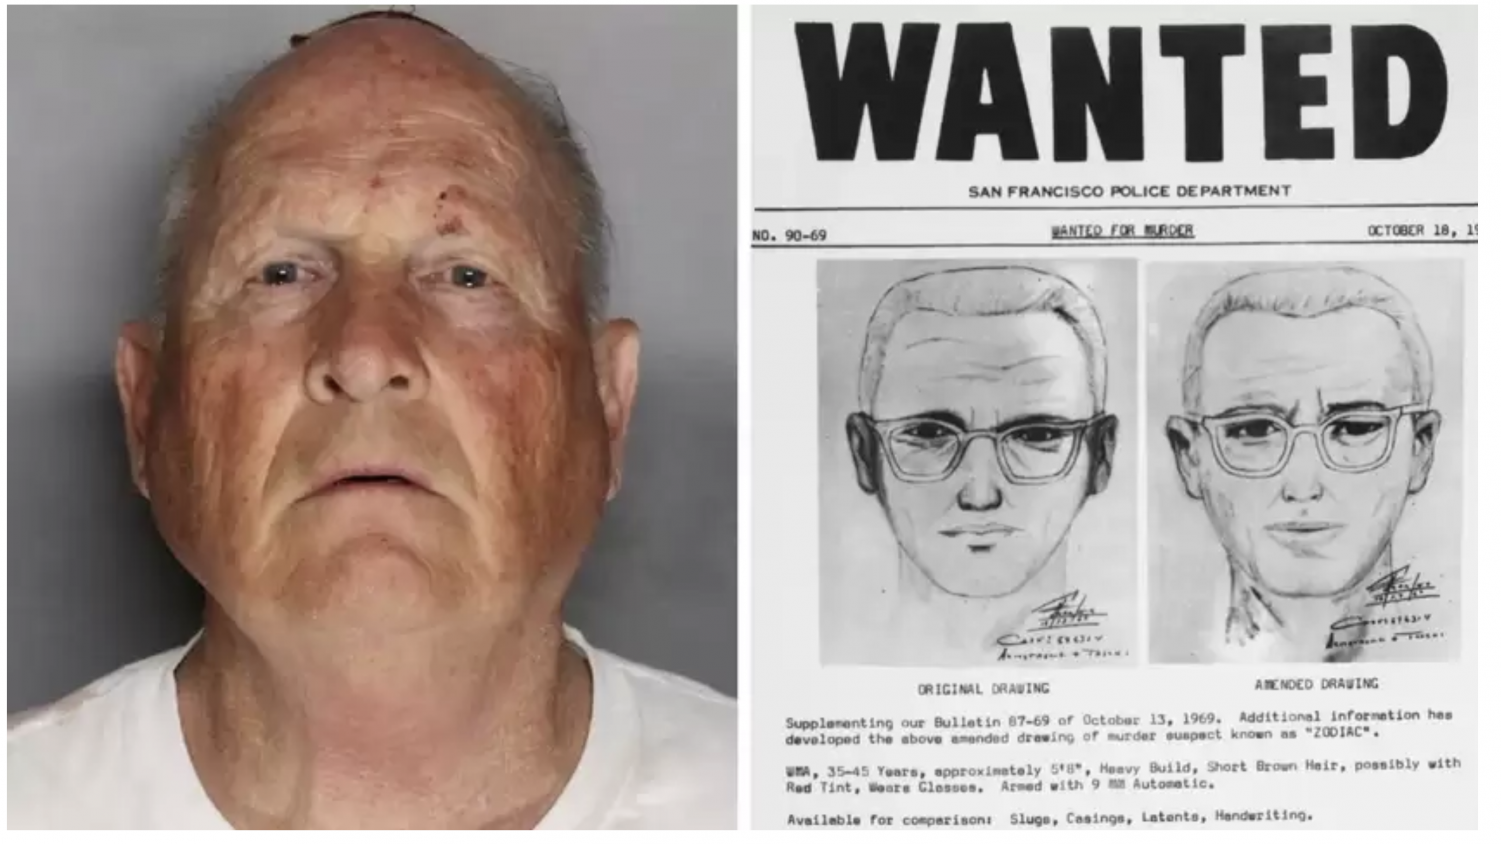 A+Sacramento+Police+mug+shot+of+Joseph+James+DeAngelo%2C+a+73-year-old+former+cop+who+police+believe+is+the+Golden+State+Killer%2C+and+a+wanted+flier+from+the+1970s.